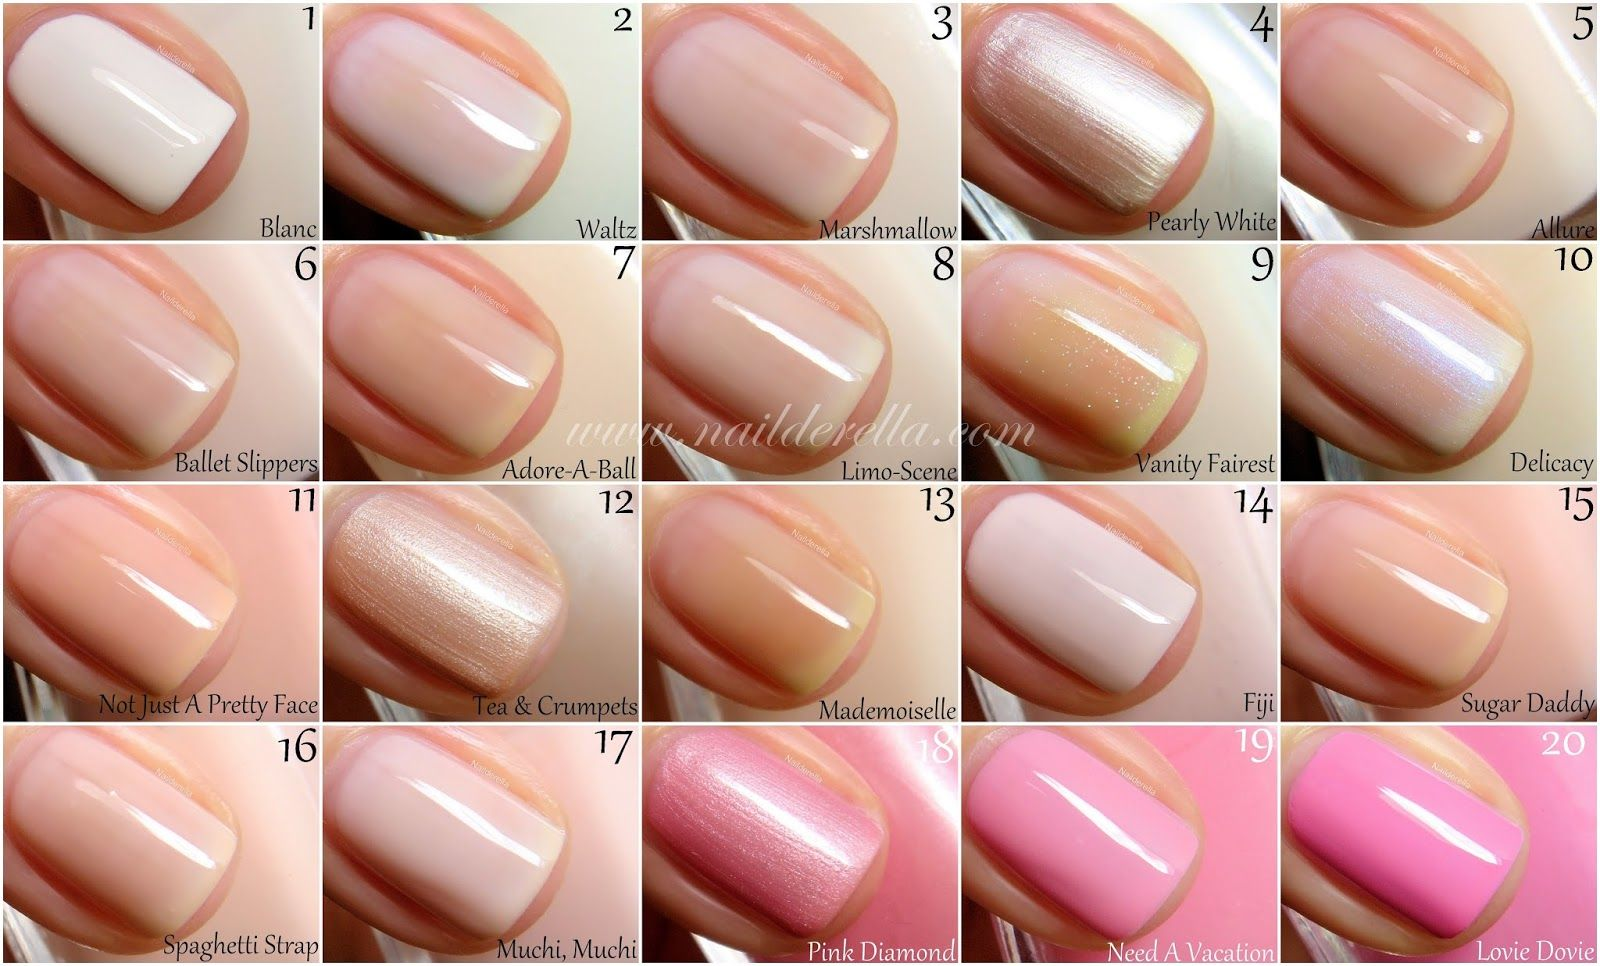 Essie Color Guide 1 100 Essie Nail Polish Colors Essie Nail Colors Essie Pink Nail Polish